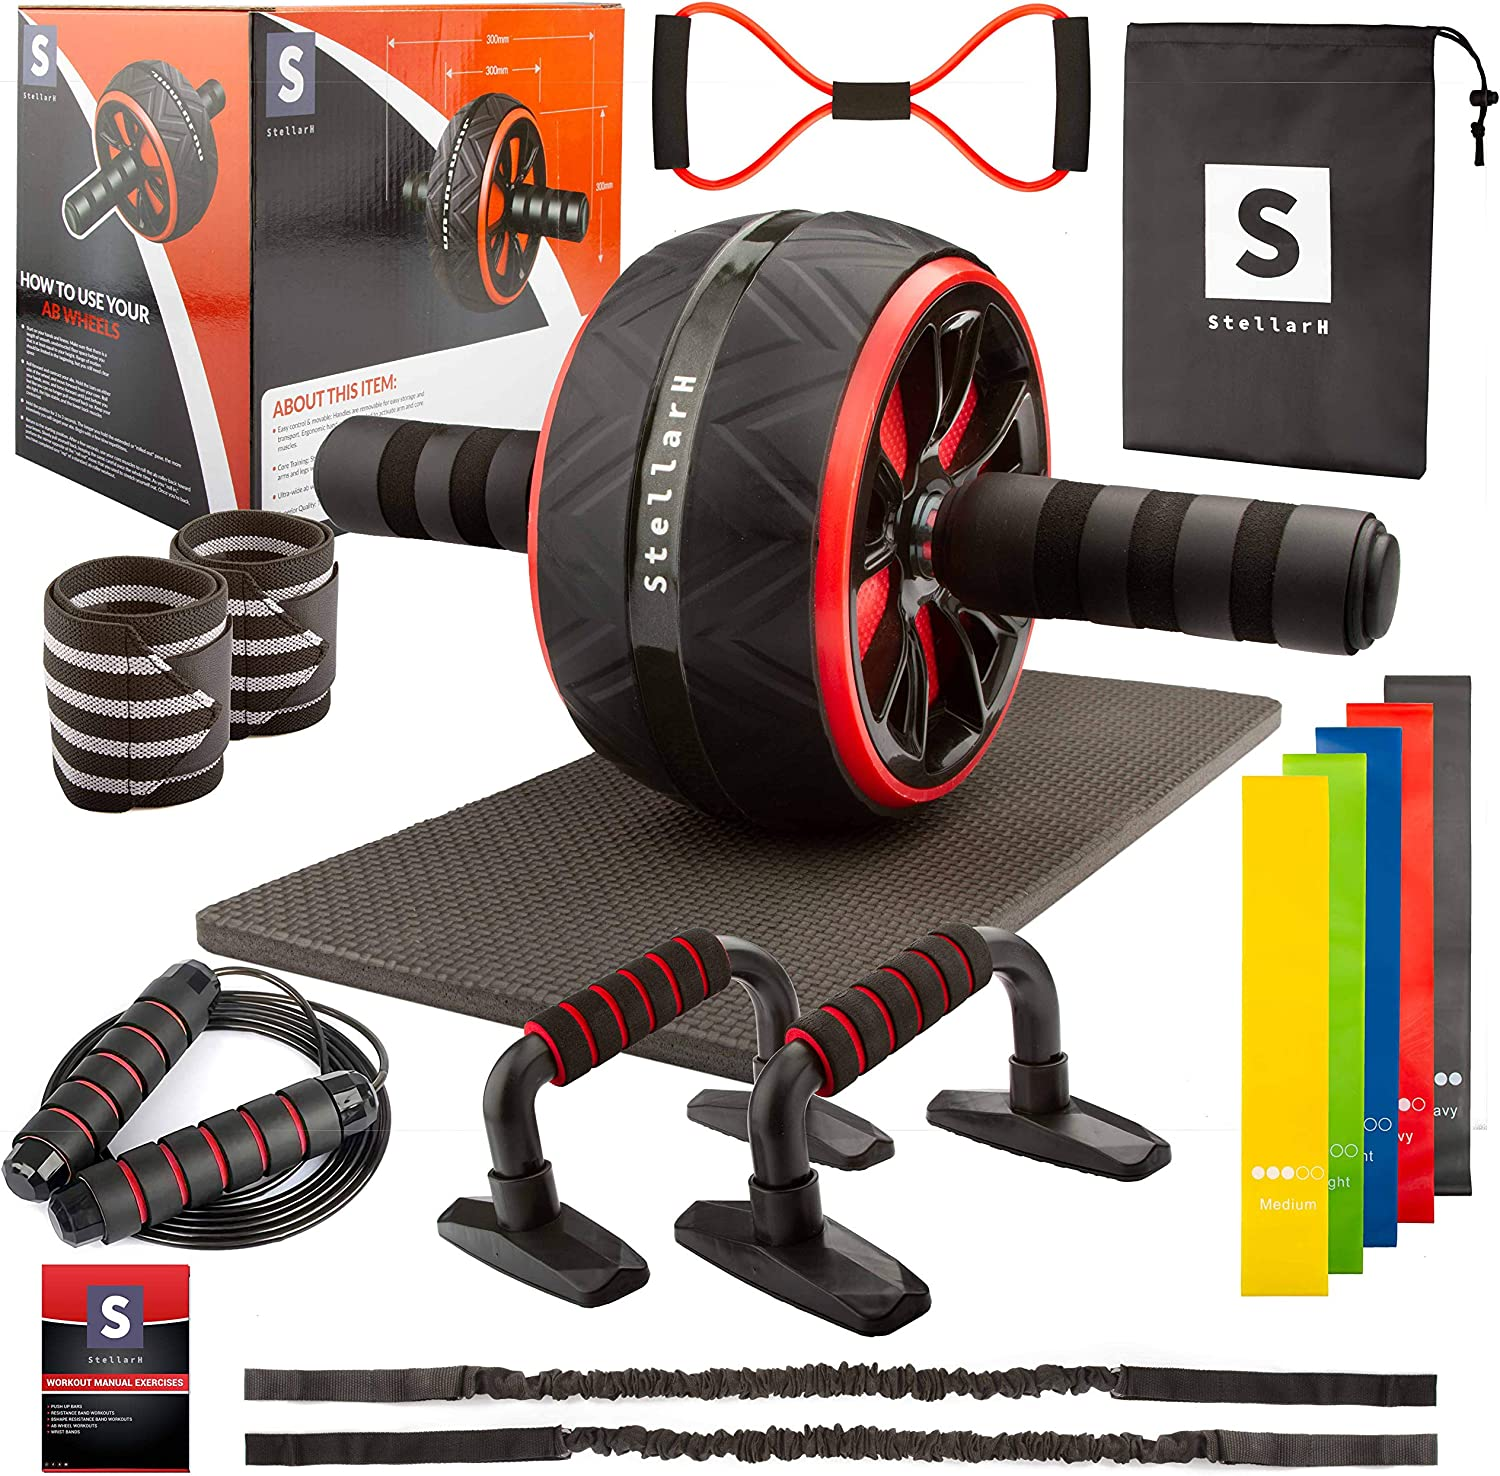 STELLARH Ab Roller Wheel 17-in-1 Ab Exercise Wheels Kit at Home Gym Set with 7 Resistance Bands, 8 Shape Band, Push Up Bars, Jump Rope & 100+ Exercises Poster[Upgraded]